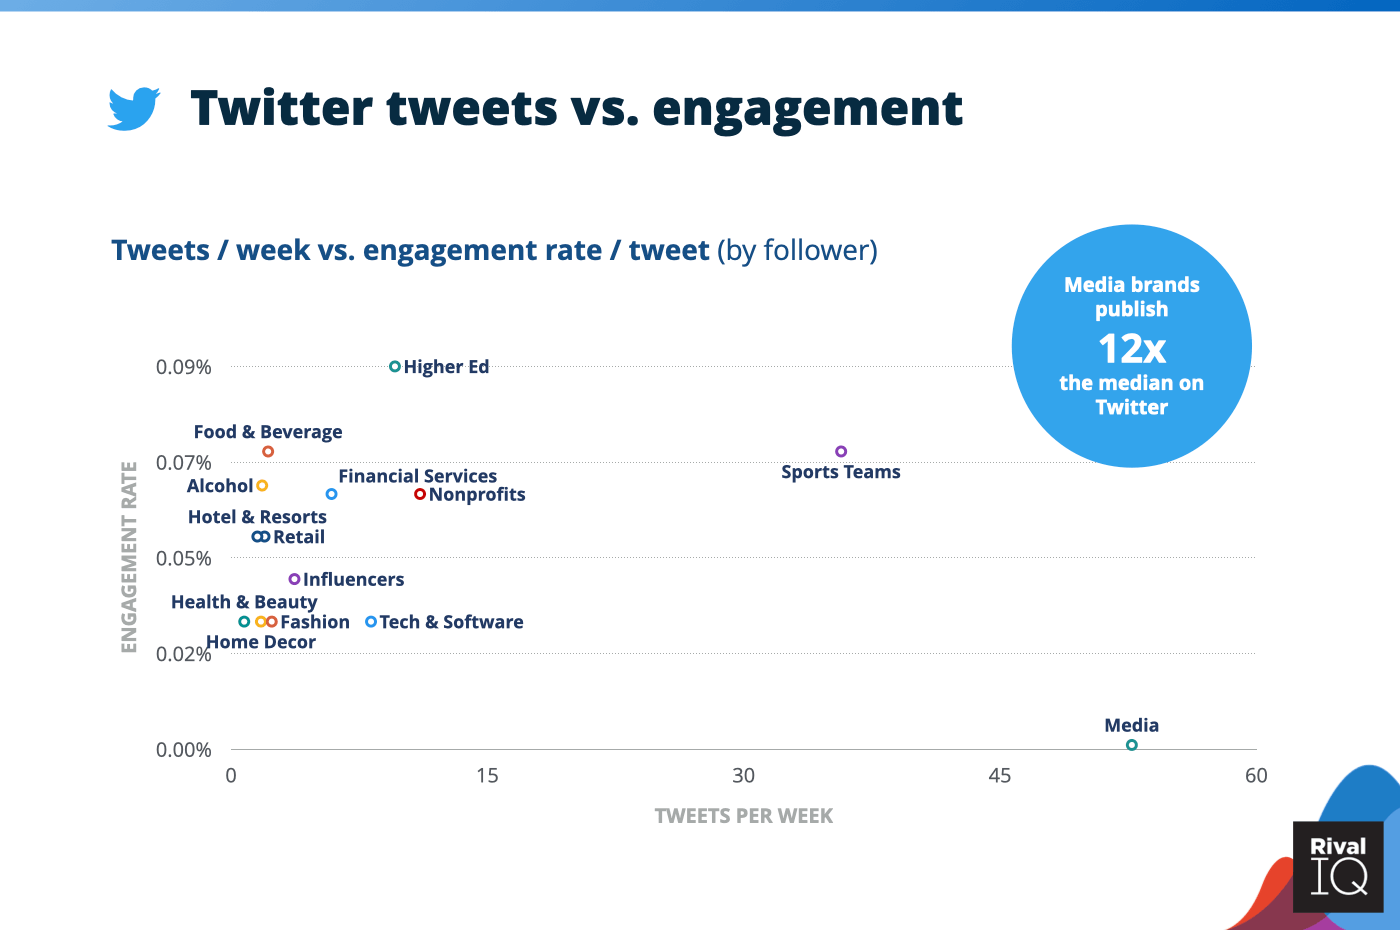 Chart of Twitter tweets per week vs. engagement rate, all industries